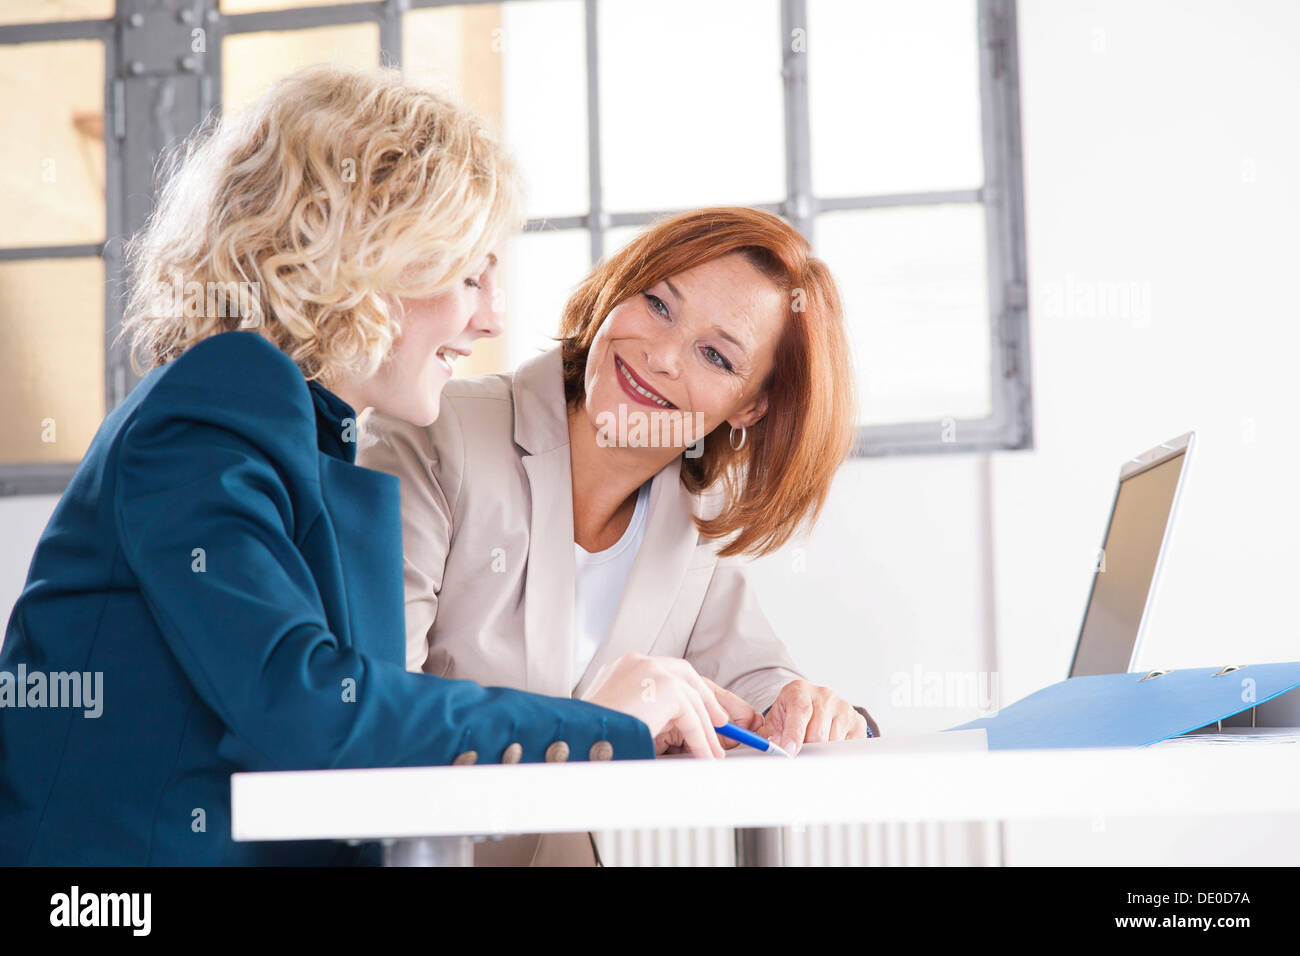 Manager working in an office with a trainee at the computer - Stock Image